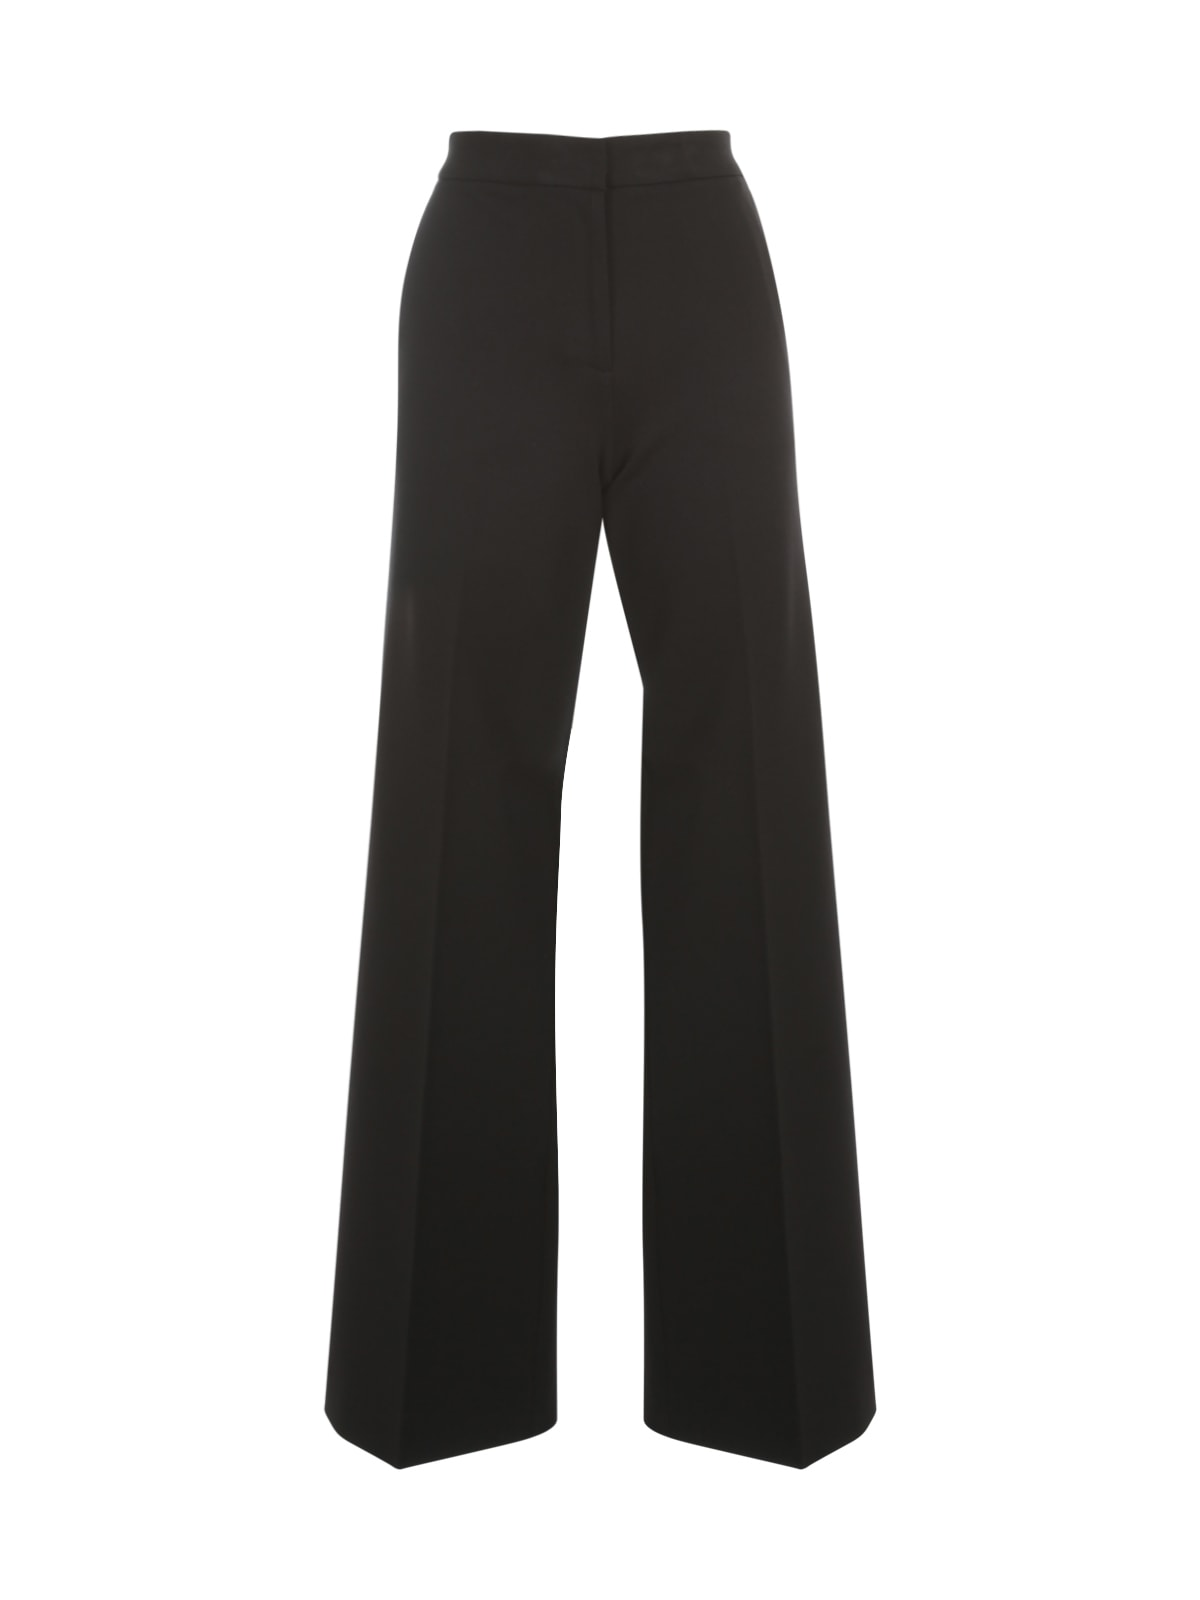 TwinSet Long Pants Wide On Bottom